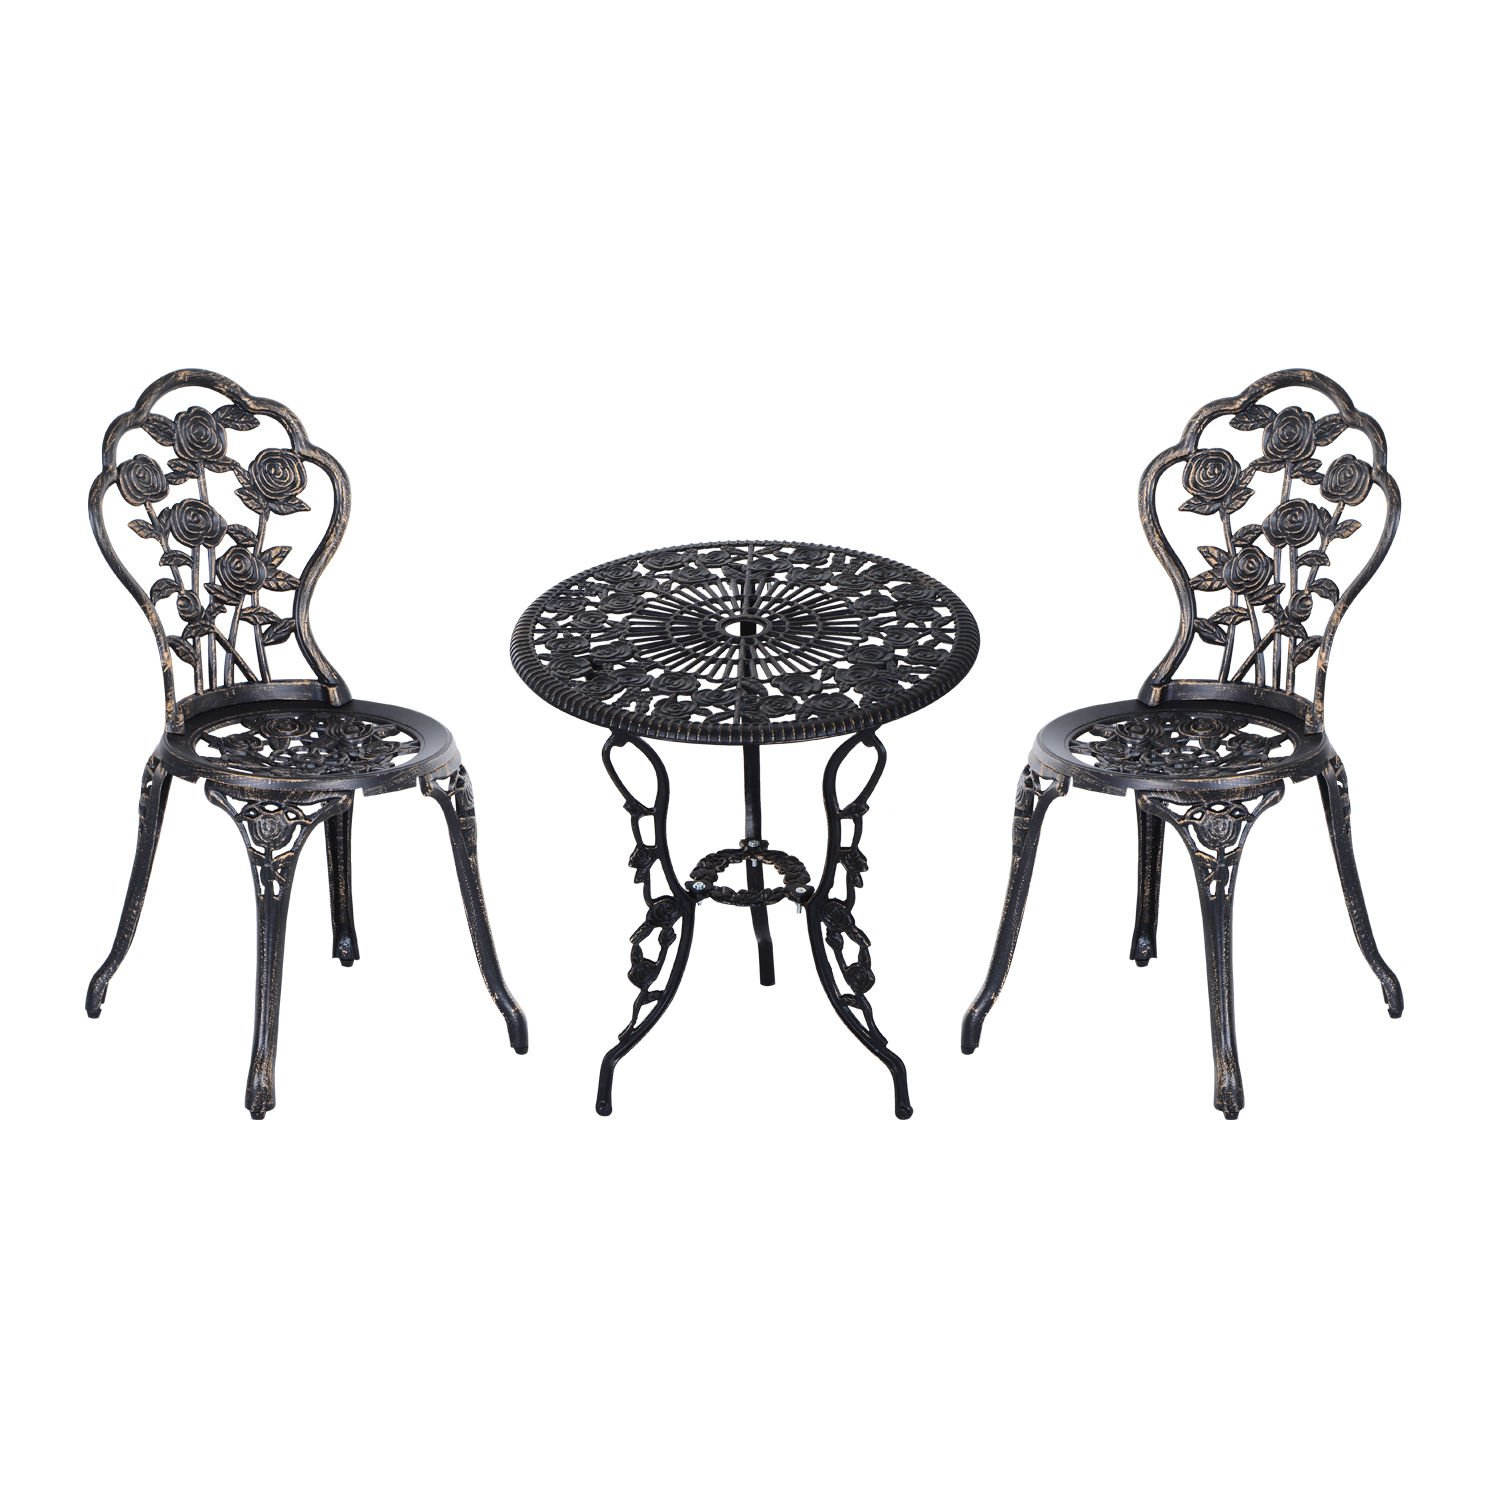 Outsunny 3 Piece Antique Style Outdoor Patio Bistro Dining Set - Bronze